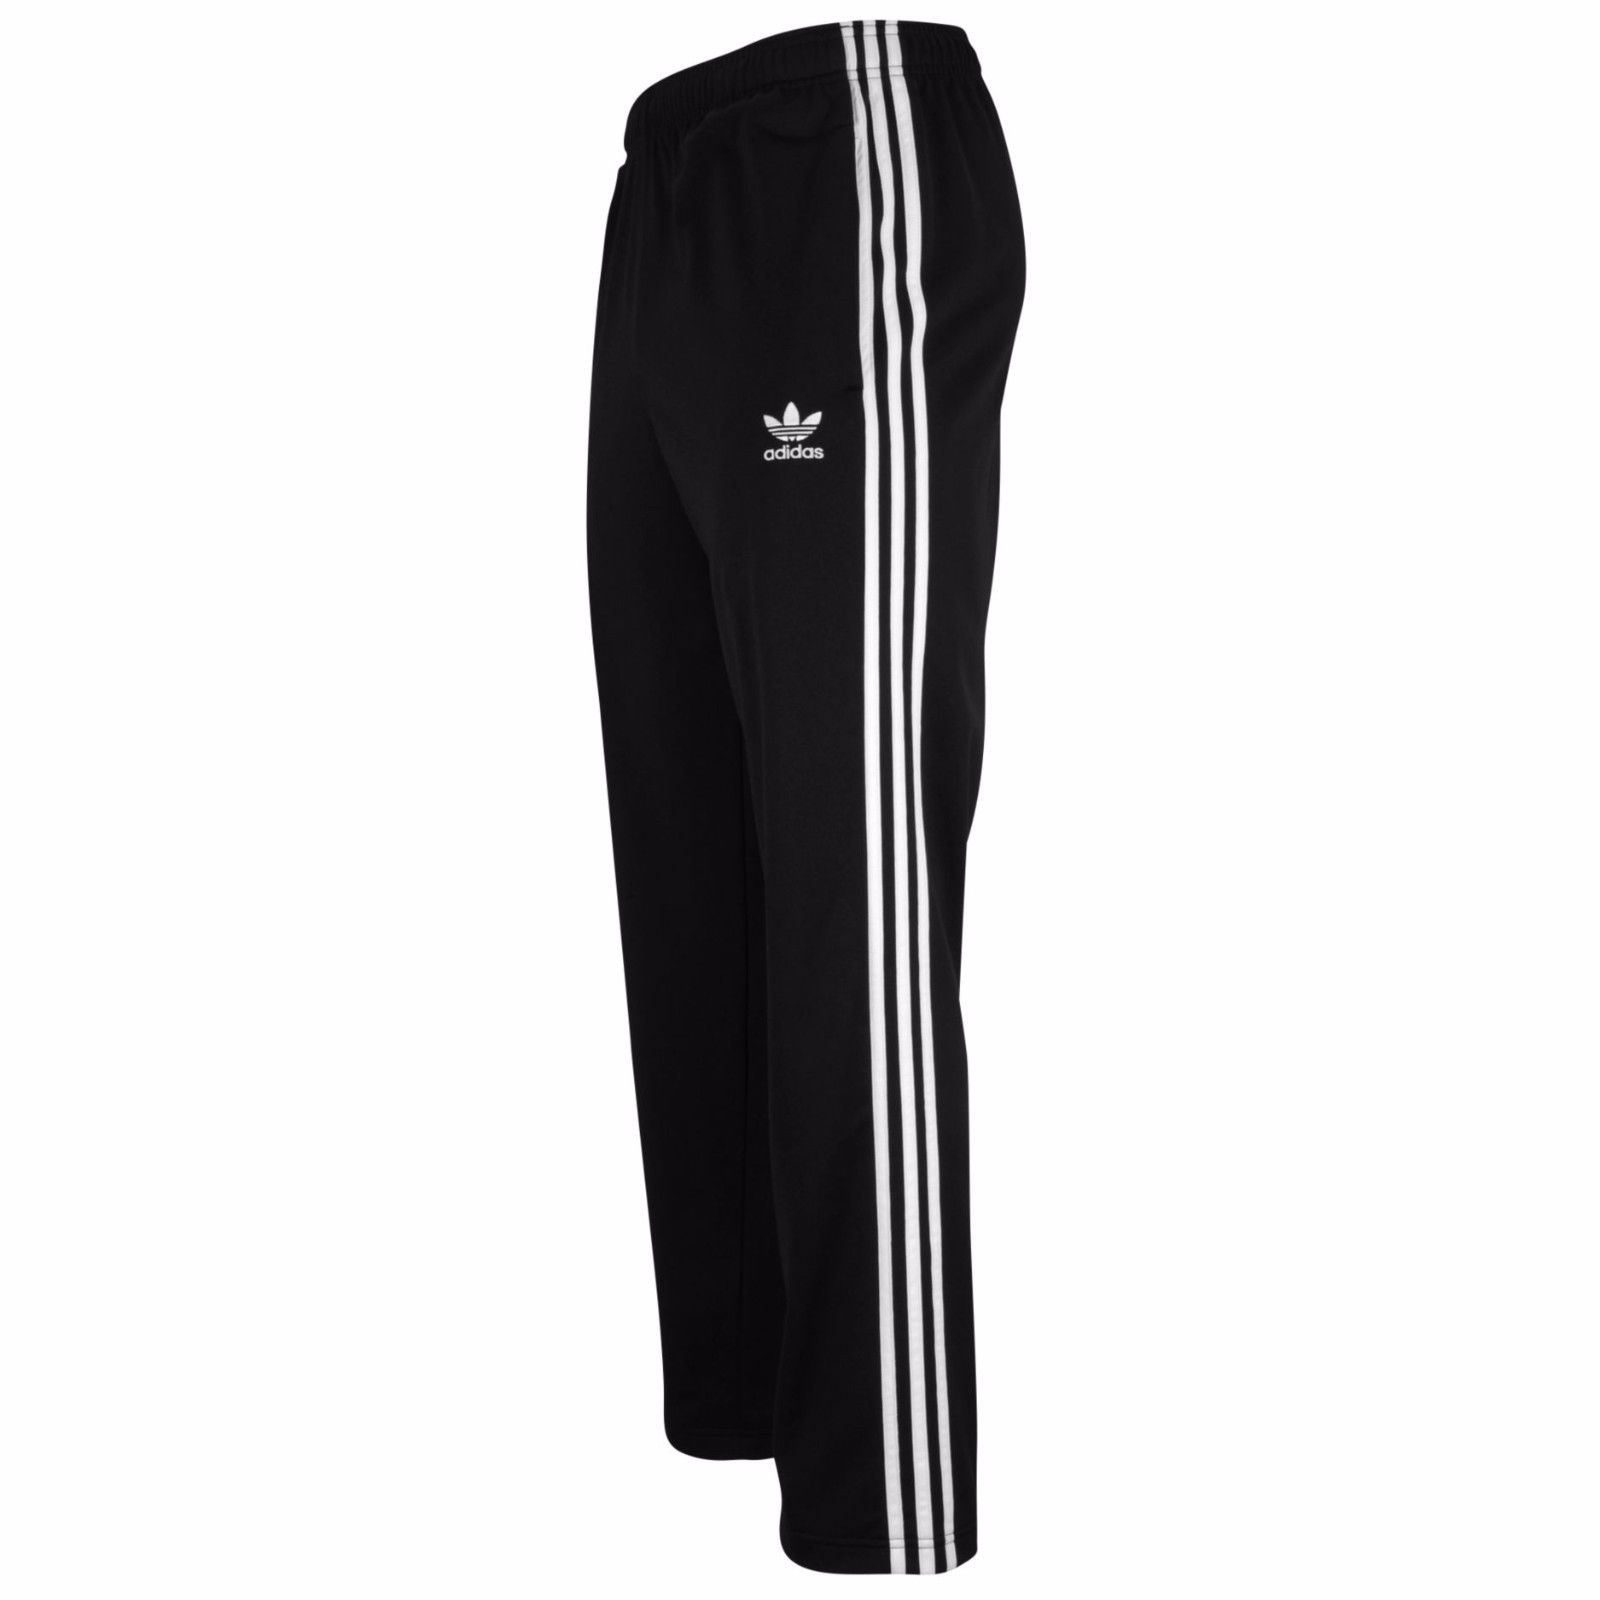 adidas joggers large adidas originals menu0027s superstar track pants f80896 black/white  joggers ZNGXCJV